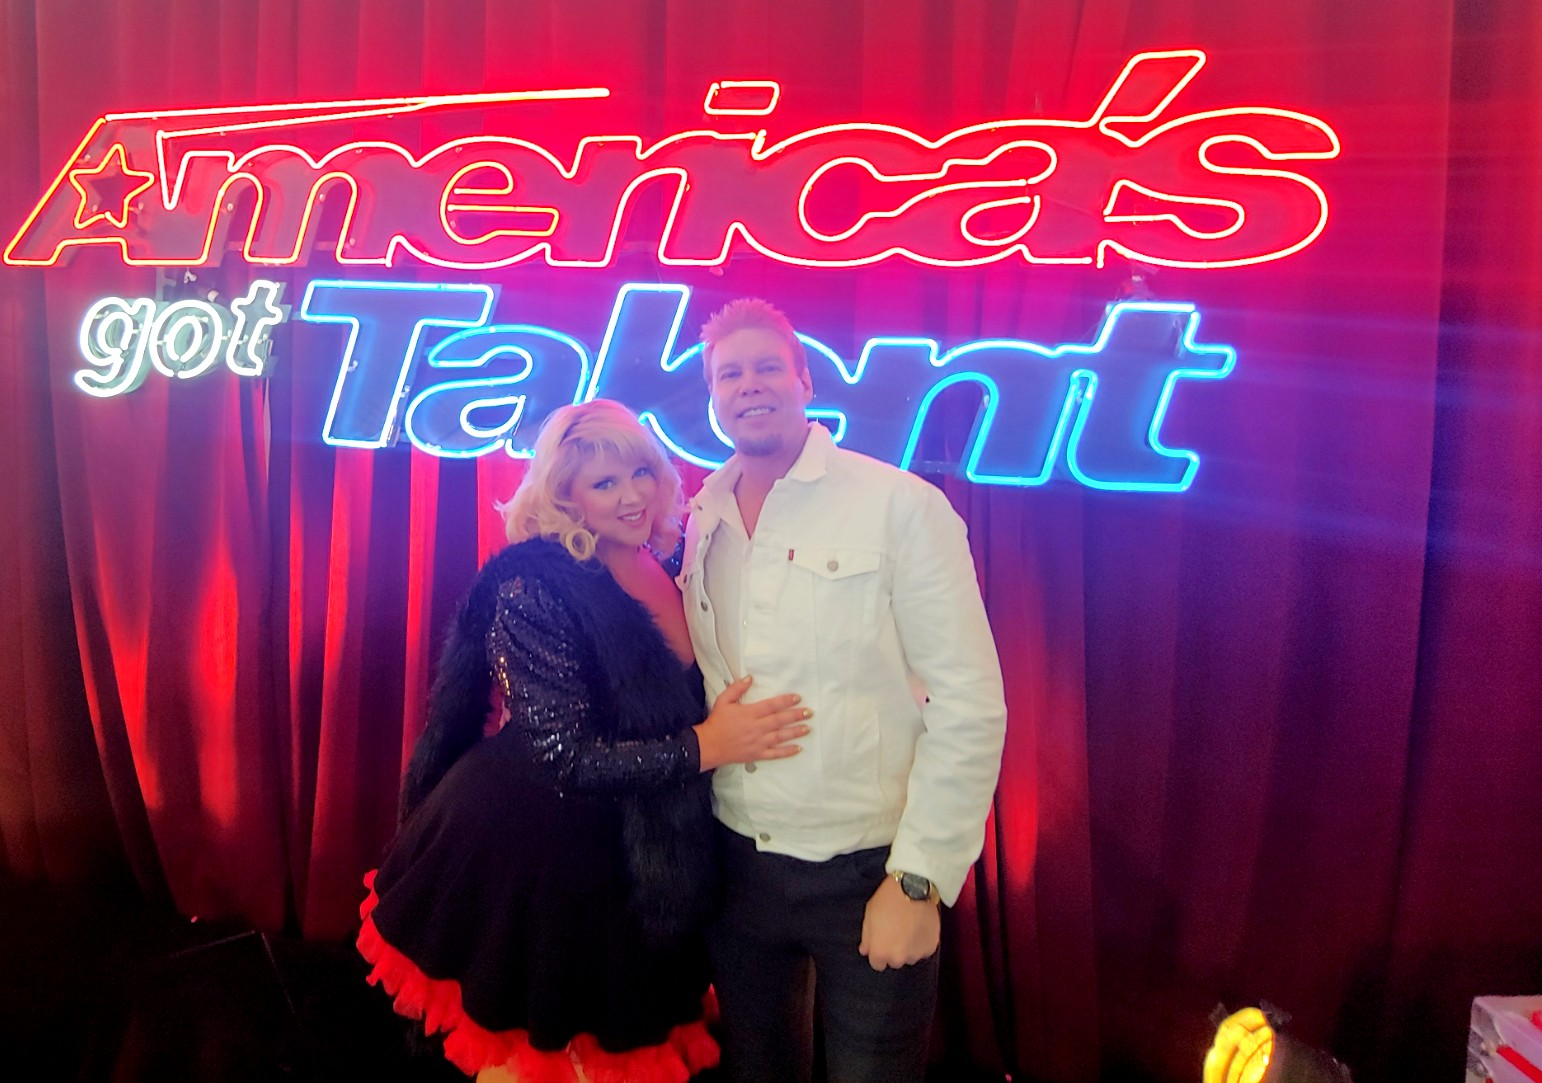 AGT with my Wife